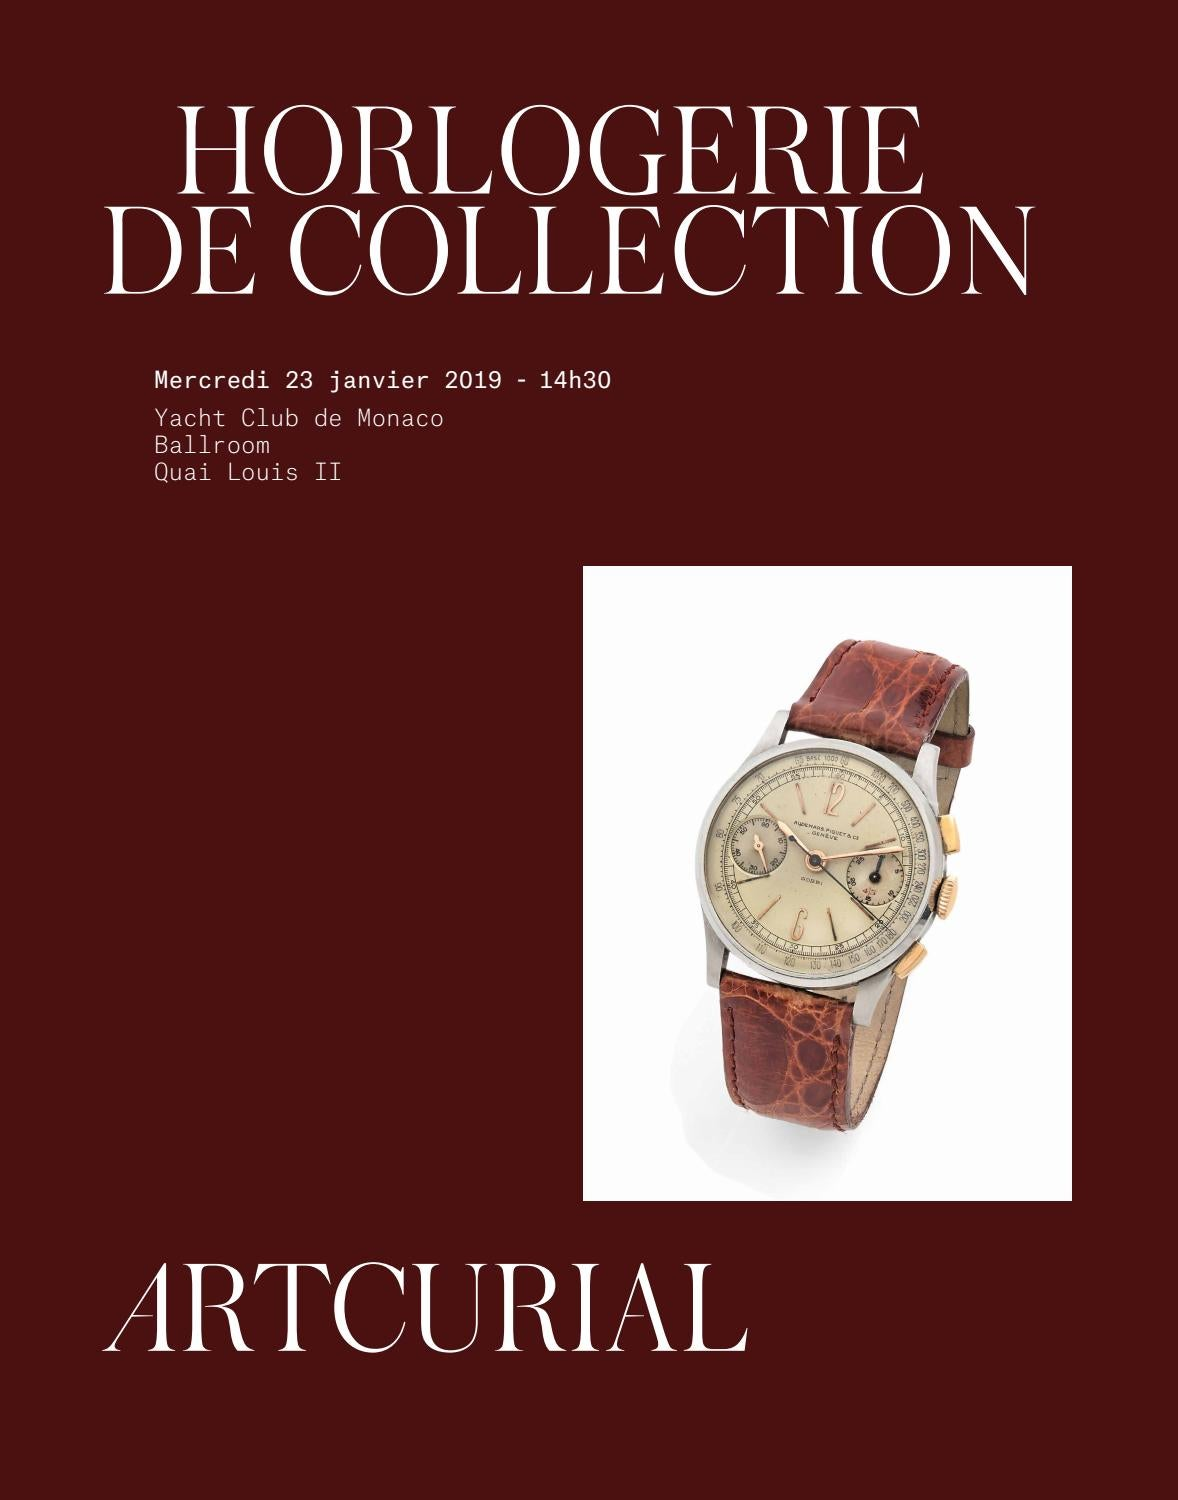 Collection By Horlogerie Artcurial De Issuu BoxWrCed